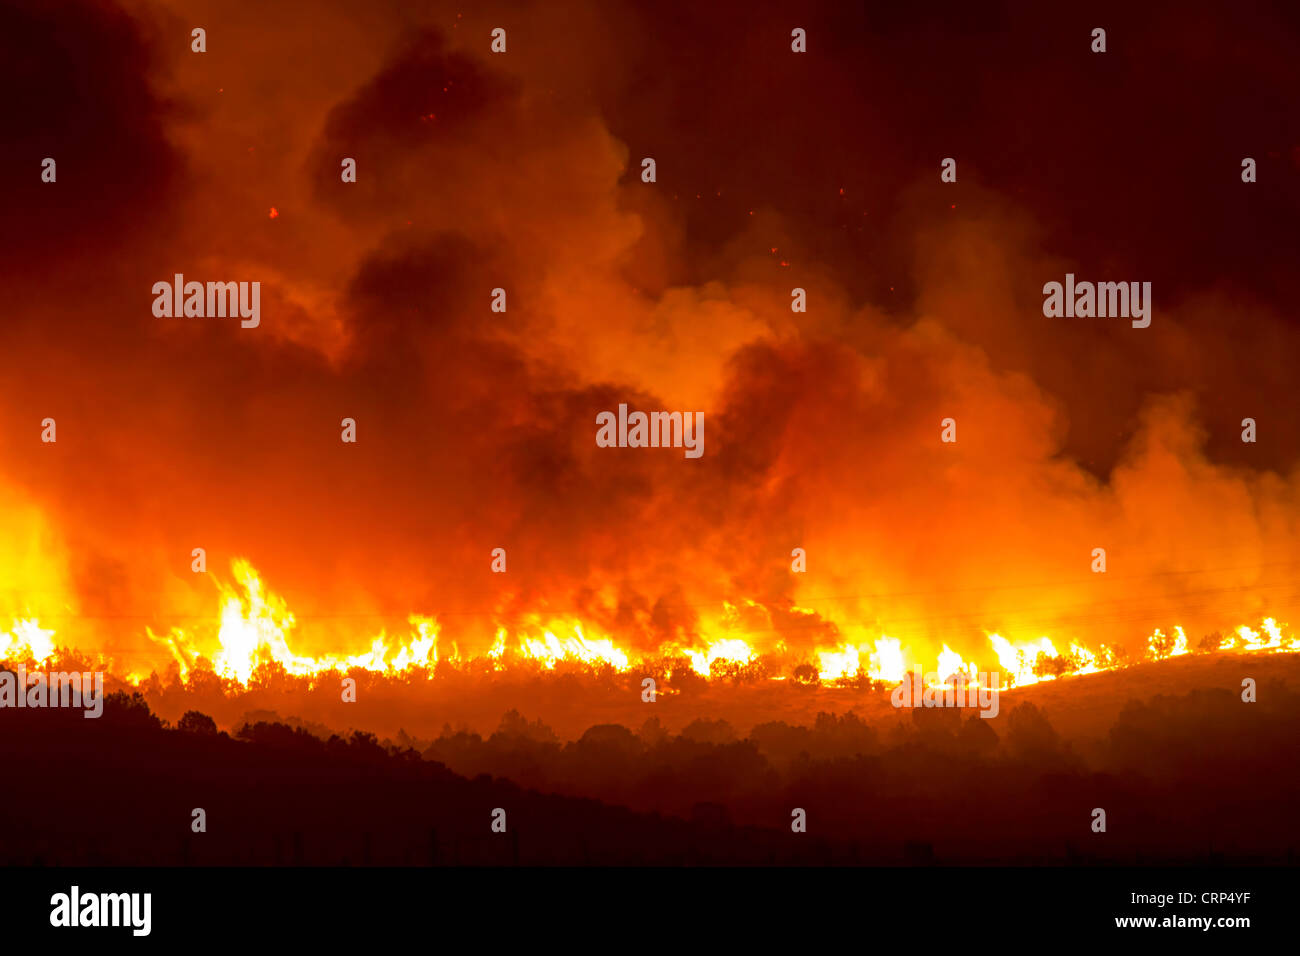 Forest fire burns out of control during night in Wood Hollow Canyon. Flames burning on mountain and wilderness. Stock Photo